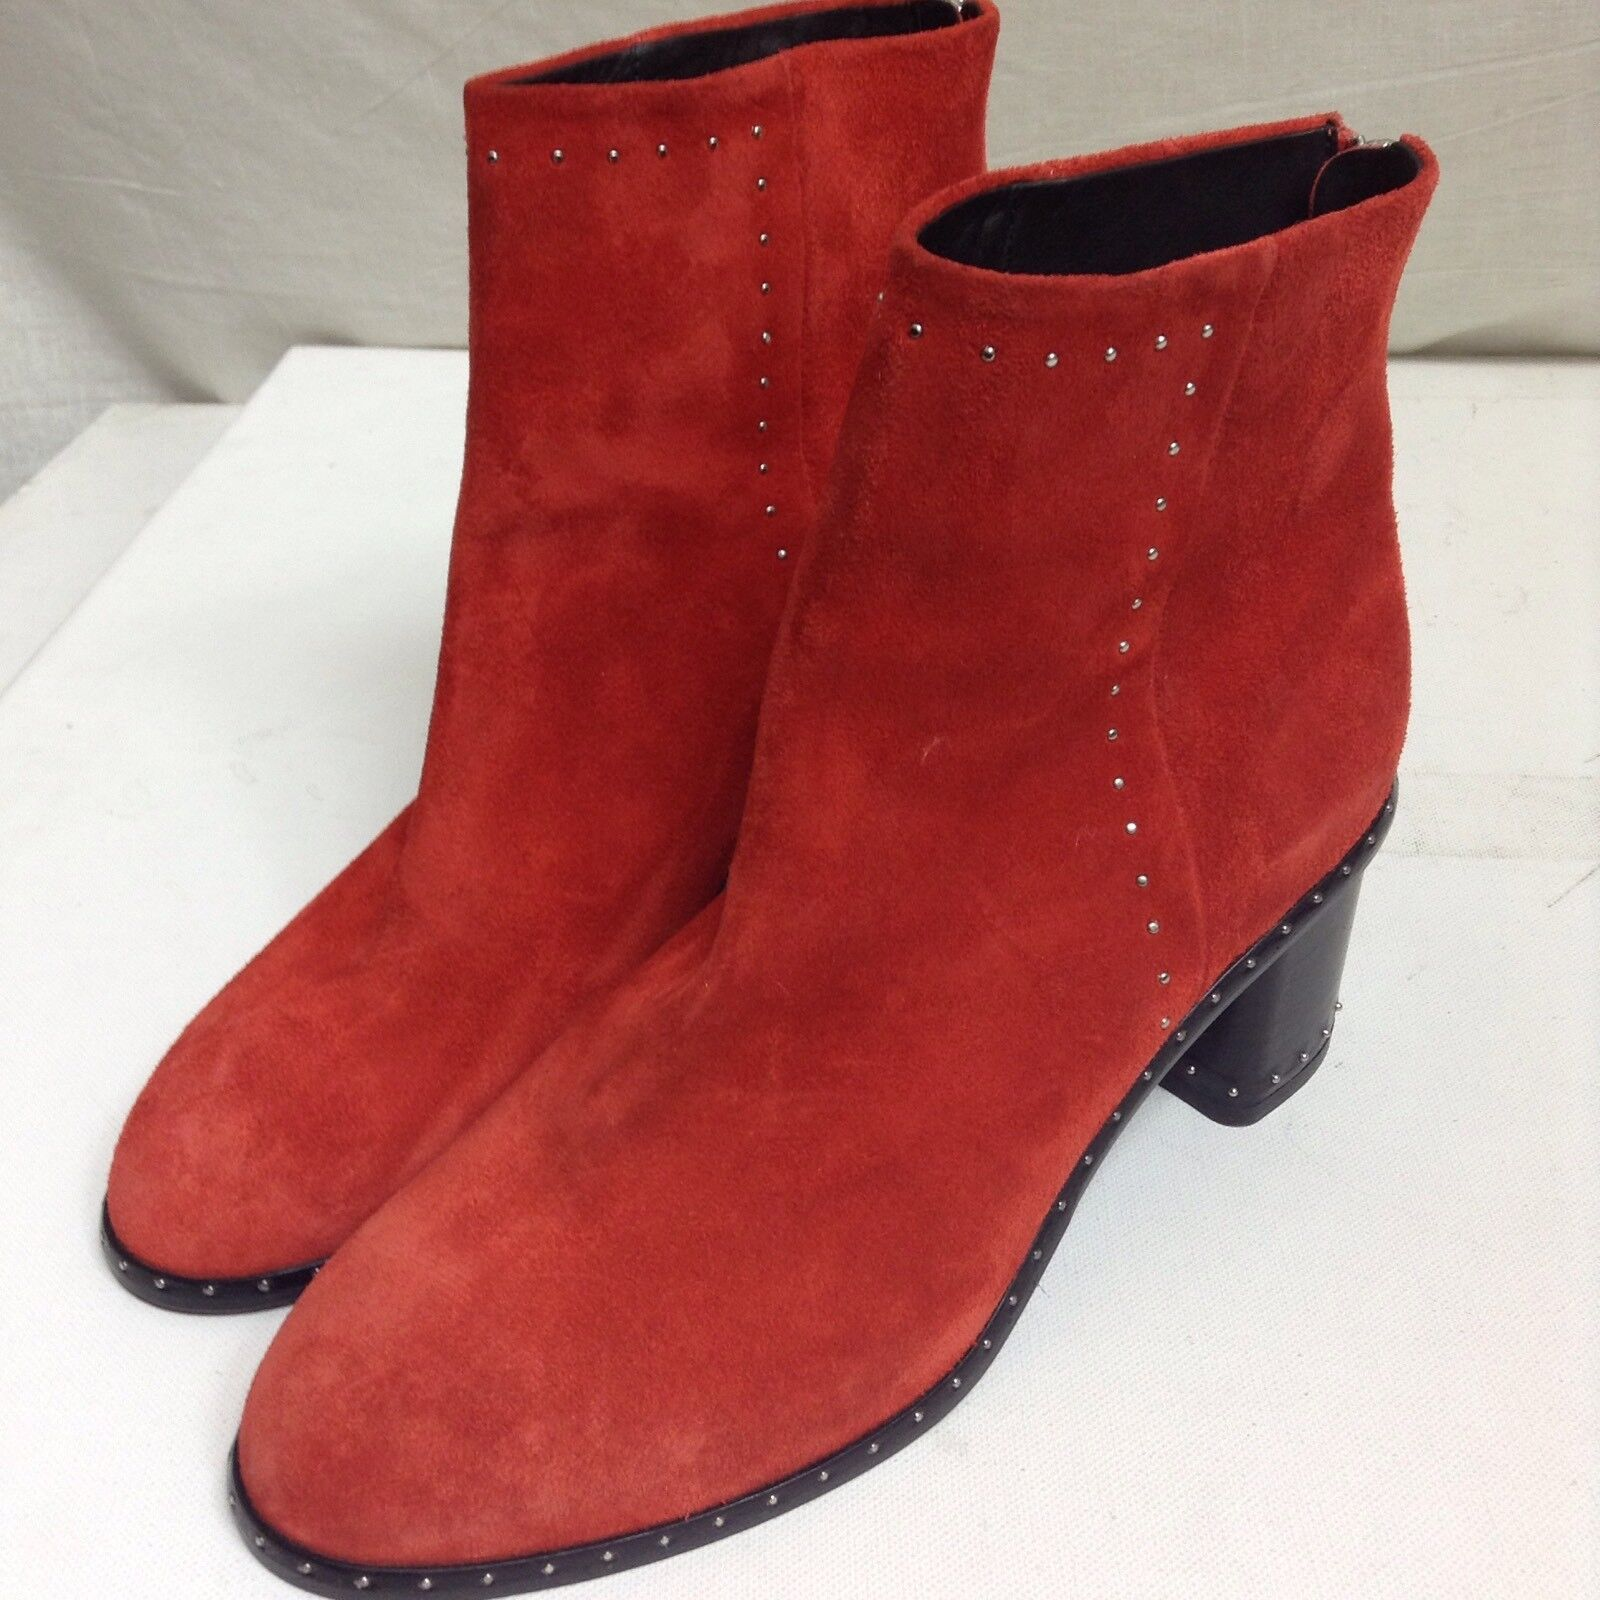 Rag & Bone Nefer Studded Suede Ankle Boots, Rosso 39 US 9